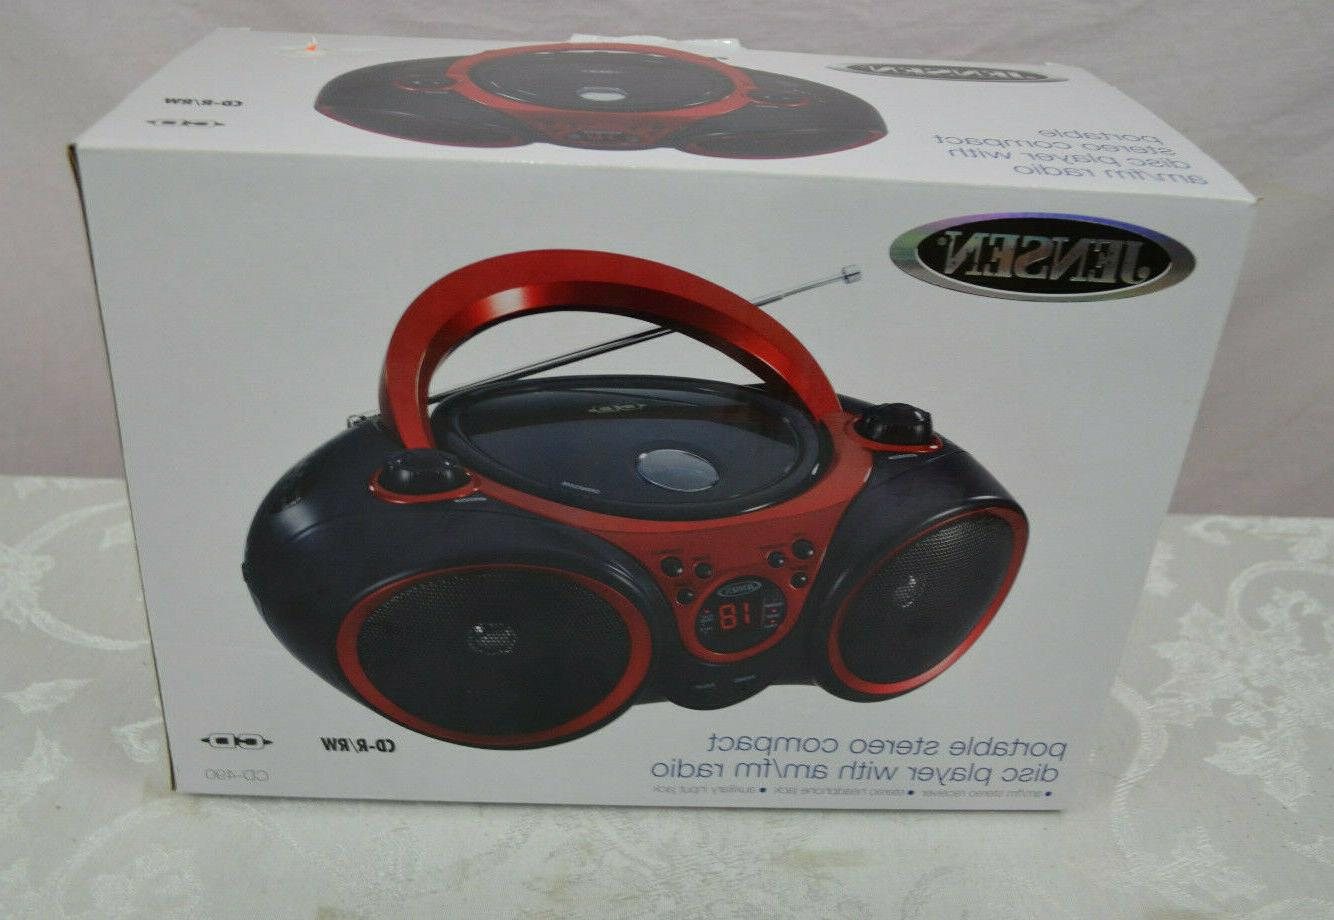 cd490 black red portable stereo cd player